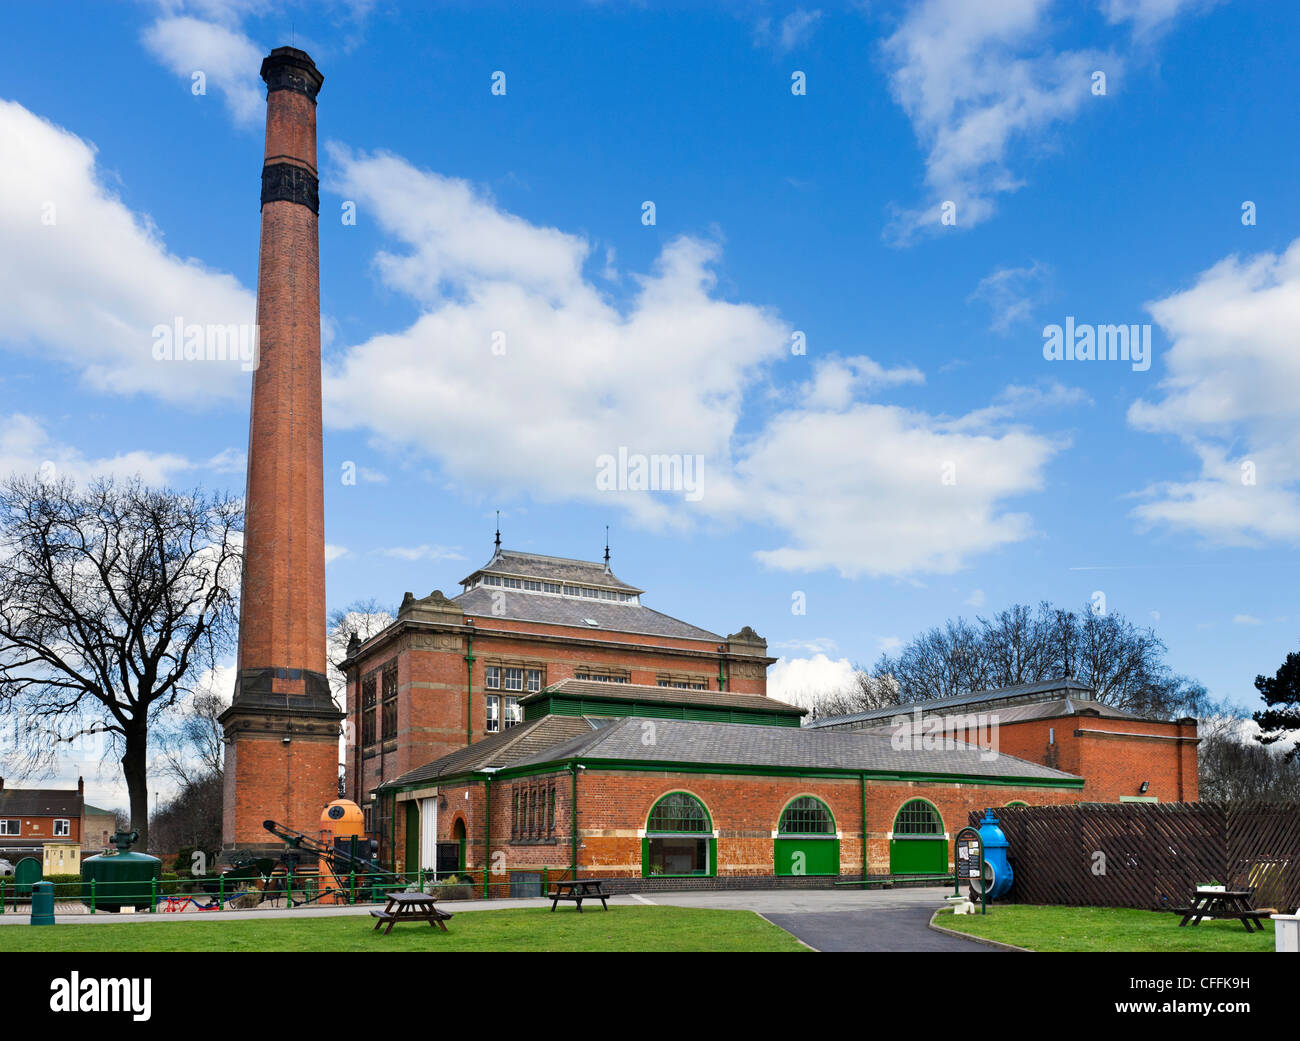 Abbey Pumping Station museum, Leicester, Leicestershire, England, UK - Stock Image